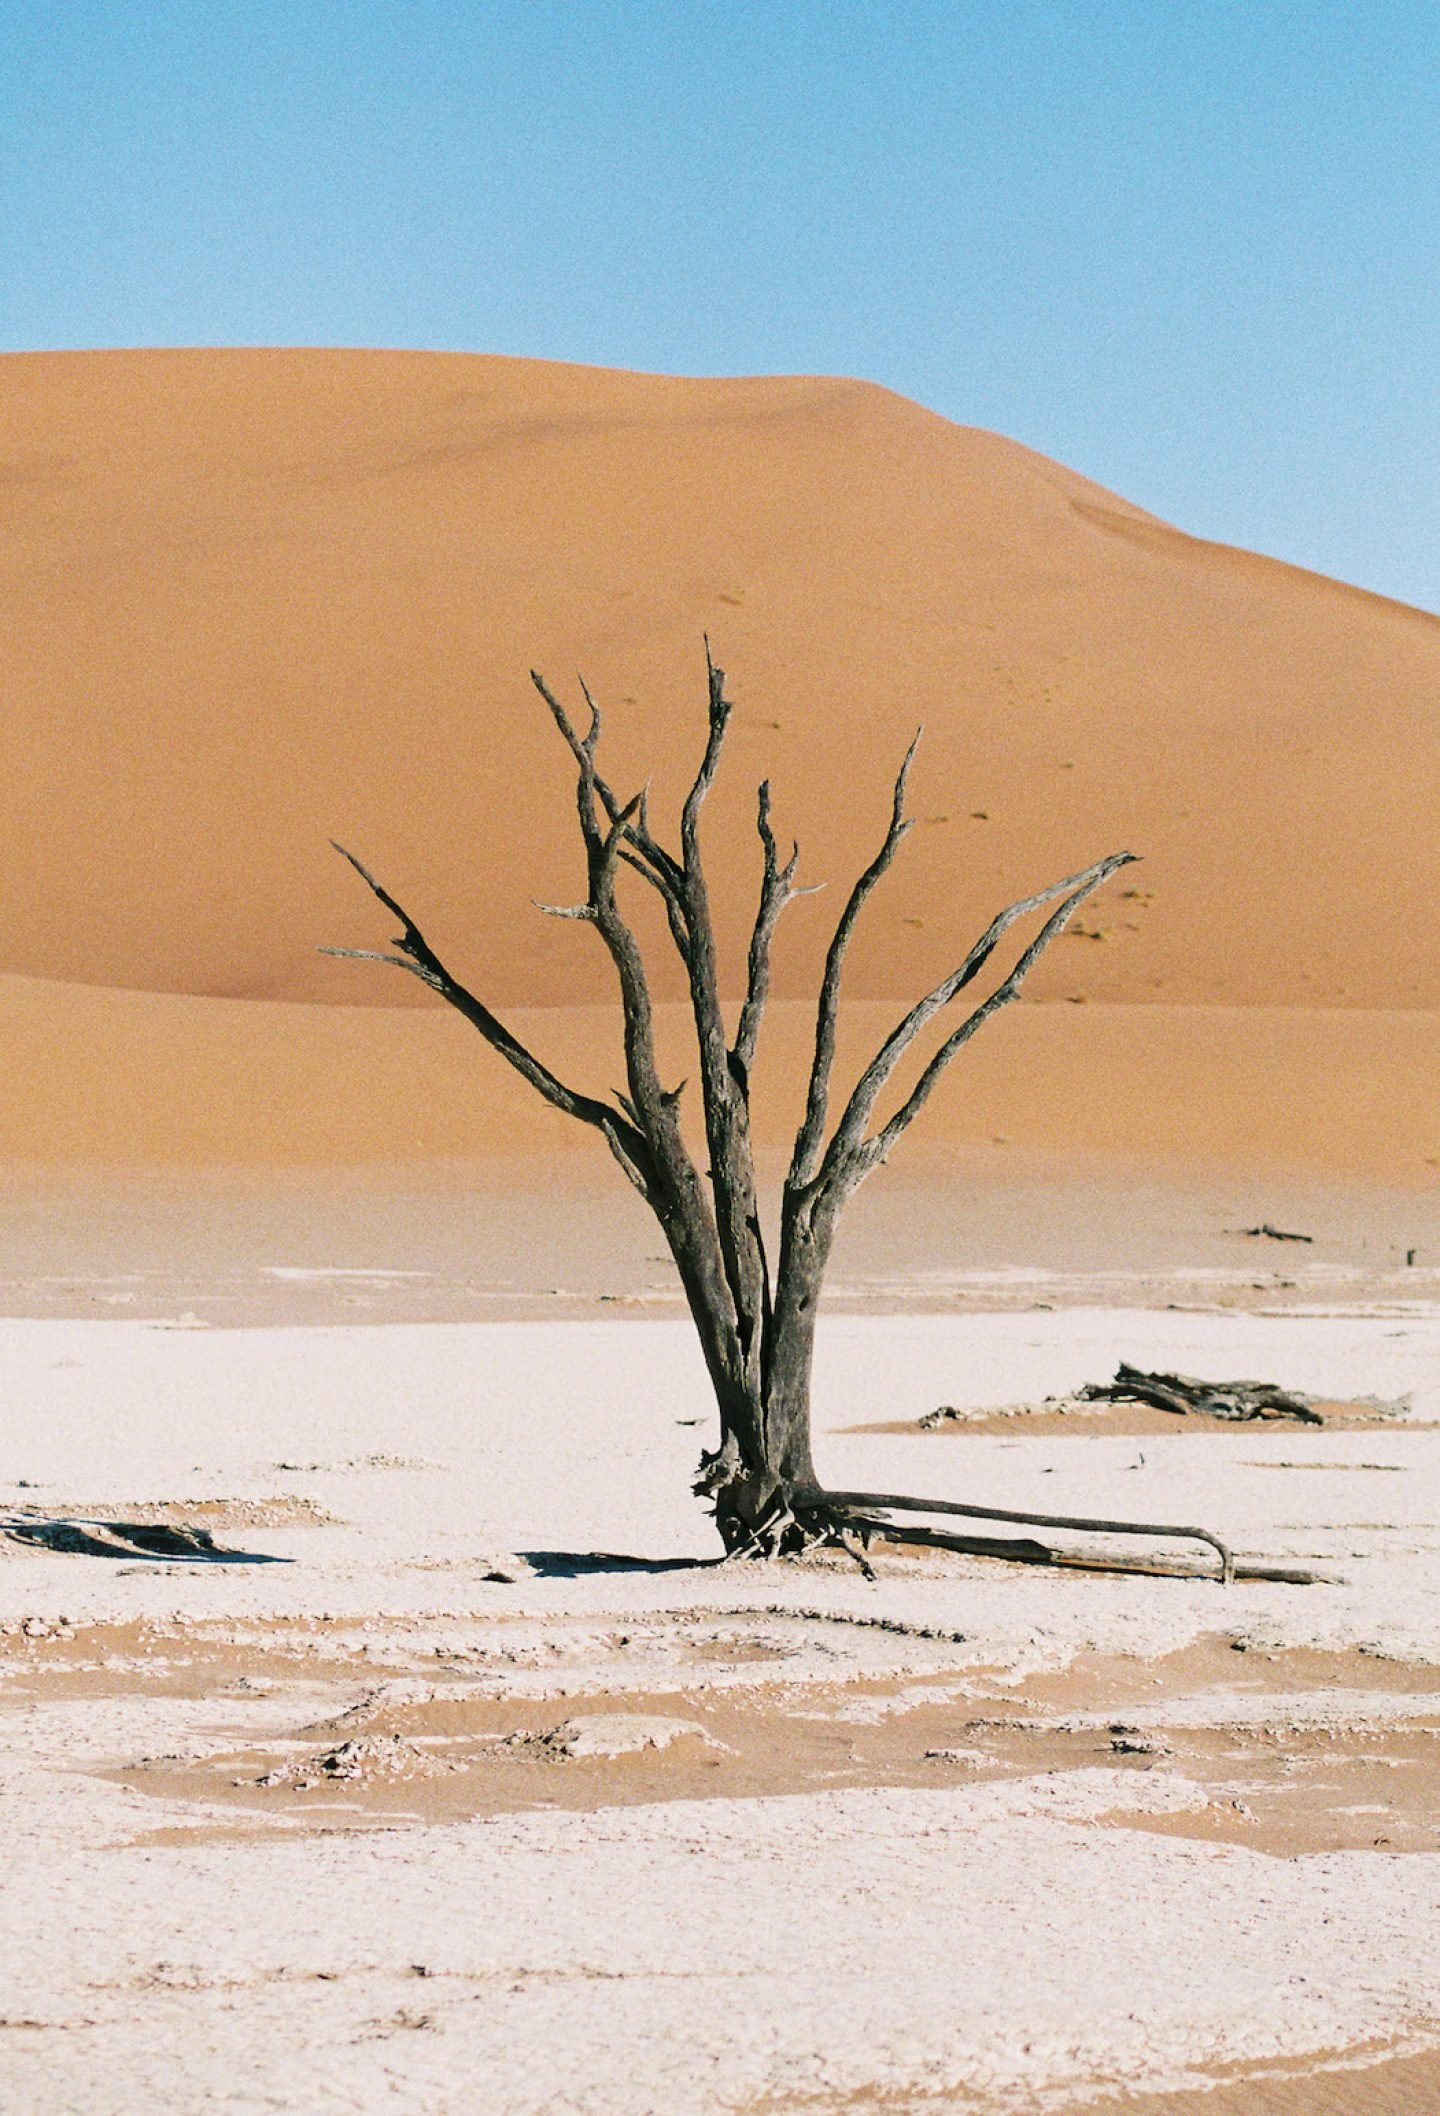 stefanhaehnel_namibia_preview-3